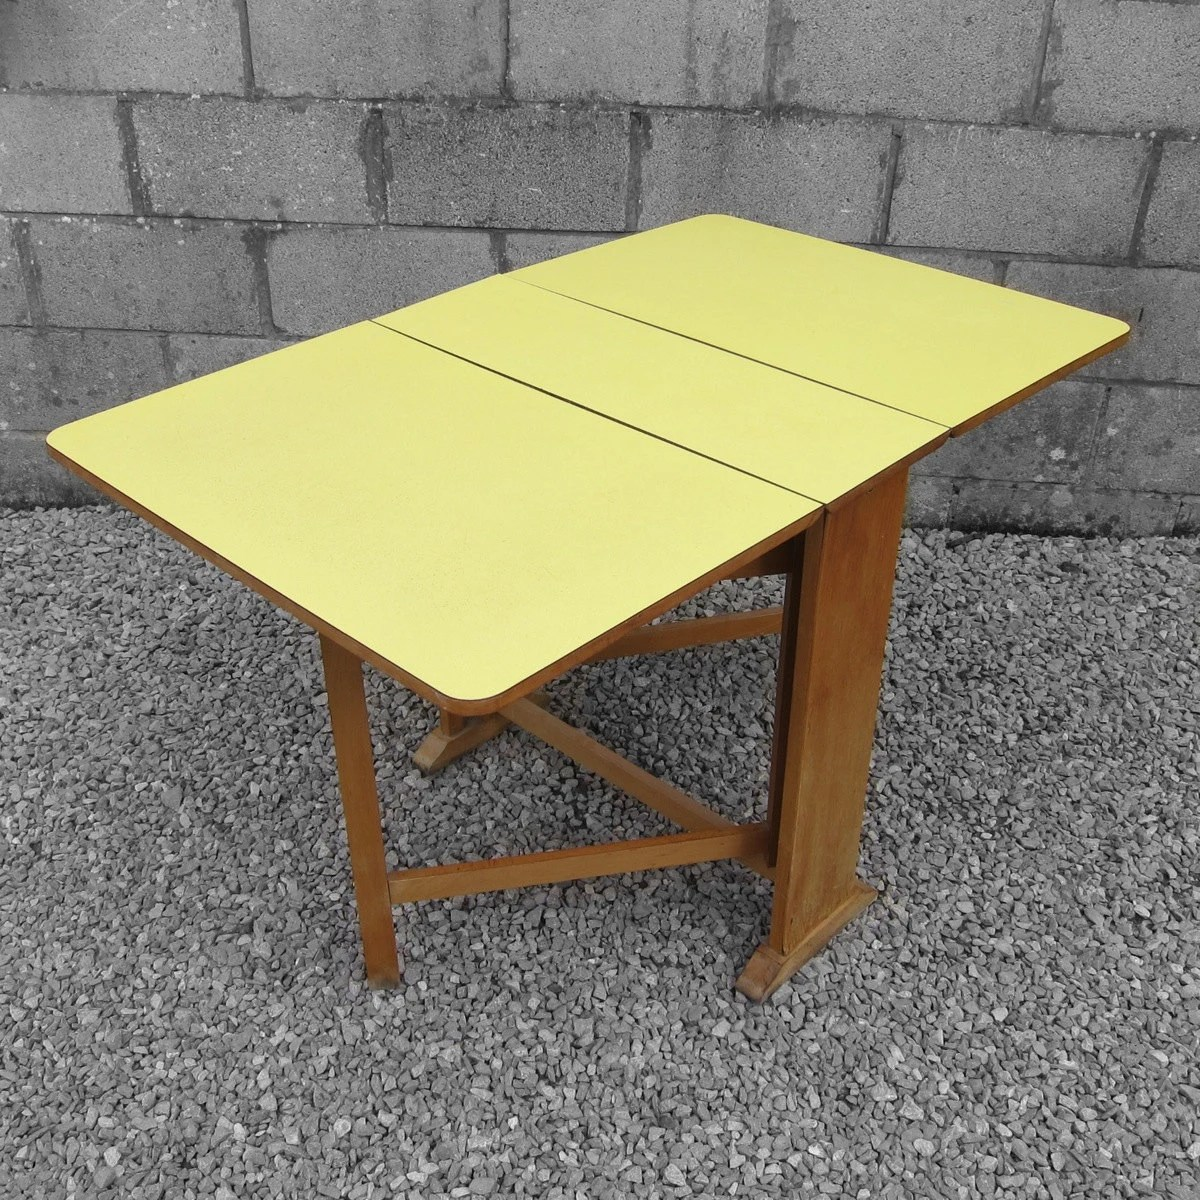 1950 s yellow formica table and chairs quartz folding chair 1950s vintage kitsch old retro kitchen